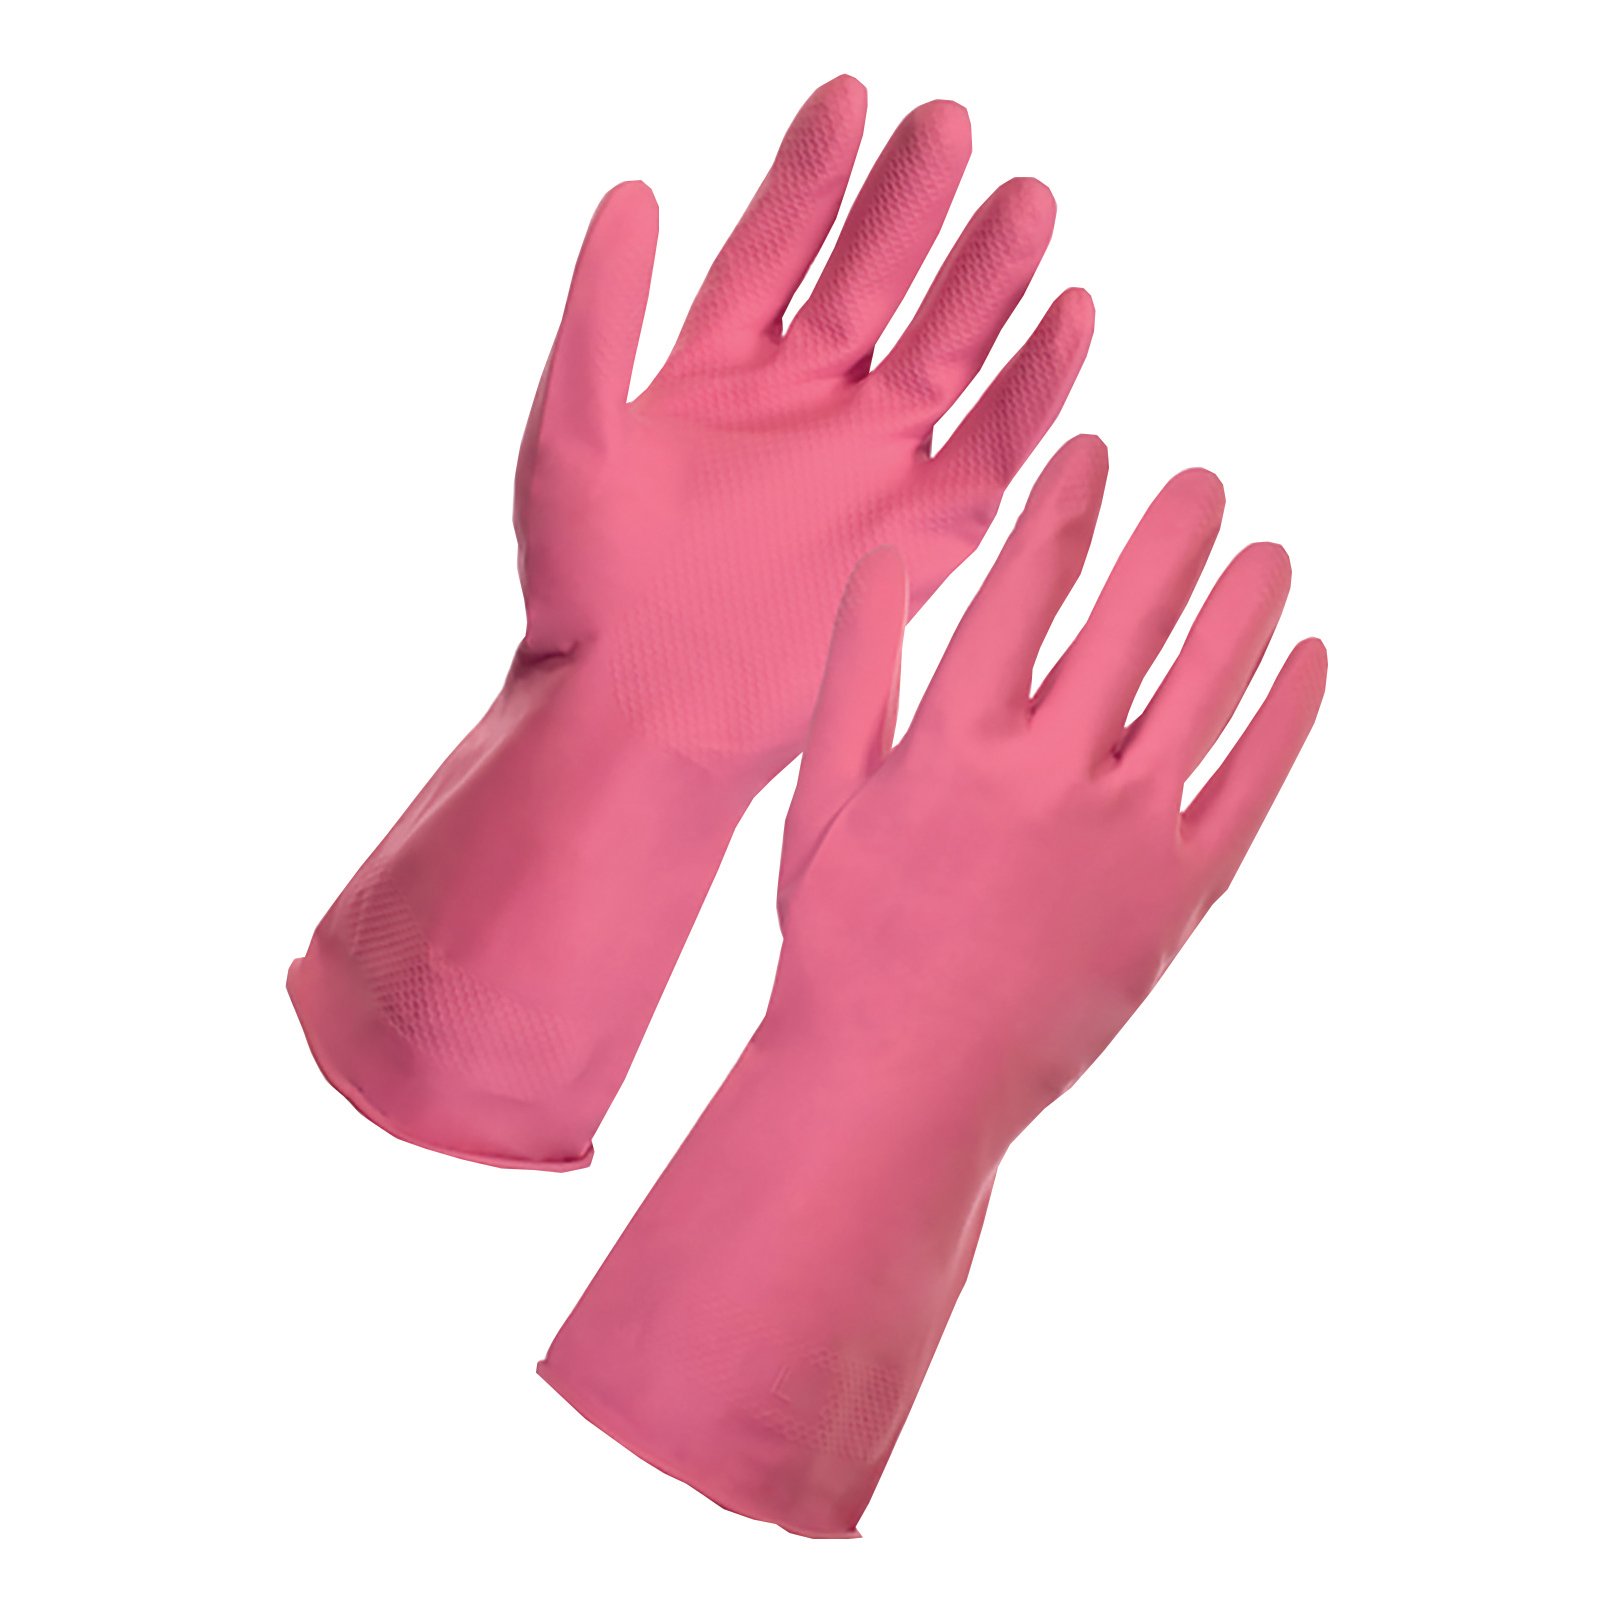 Supertouch Household Latex Gloves Medium Pink Ref 13352 [Pair]